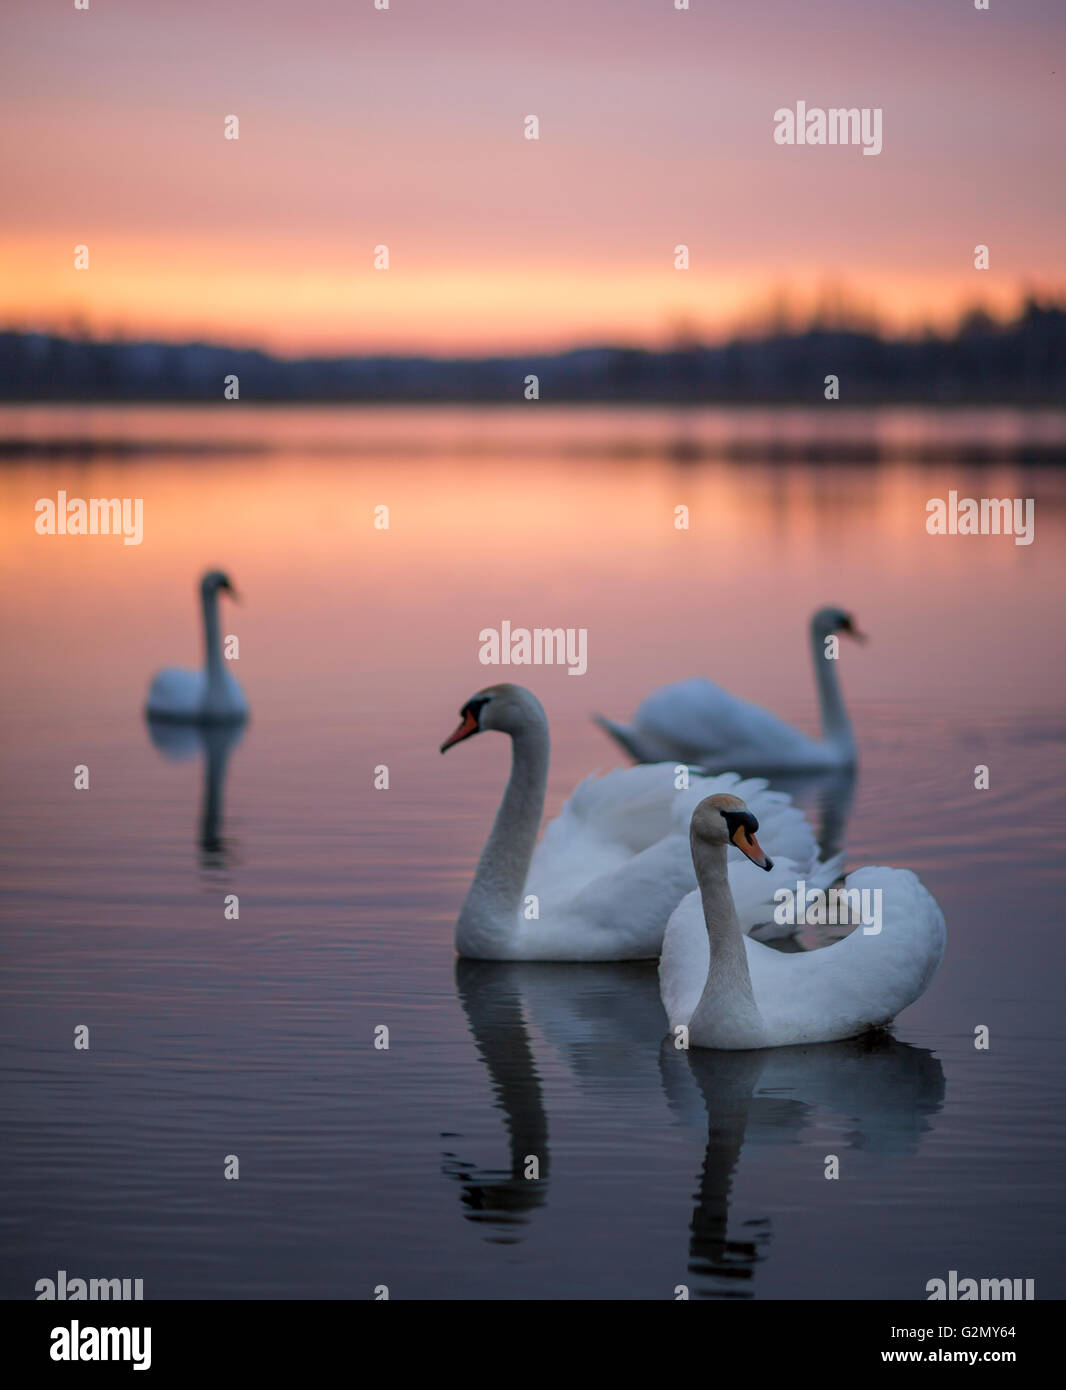 Group of swans on the lake with a mirror reflection during the beautiful sunset. Stock Photo